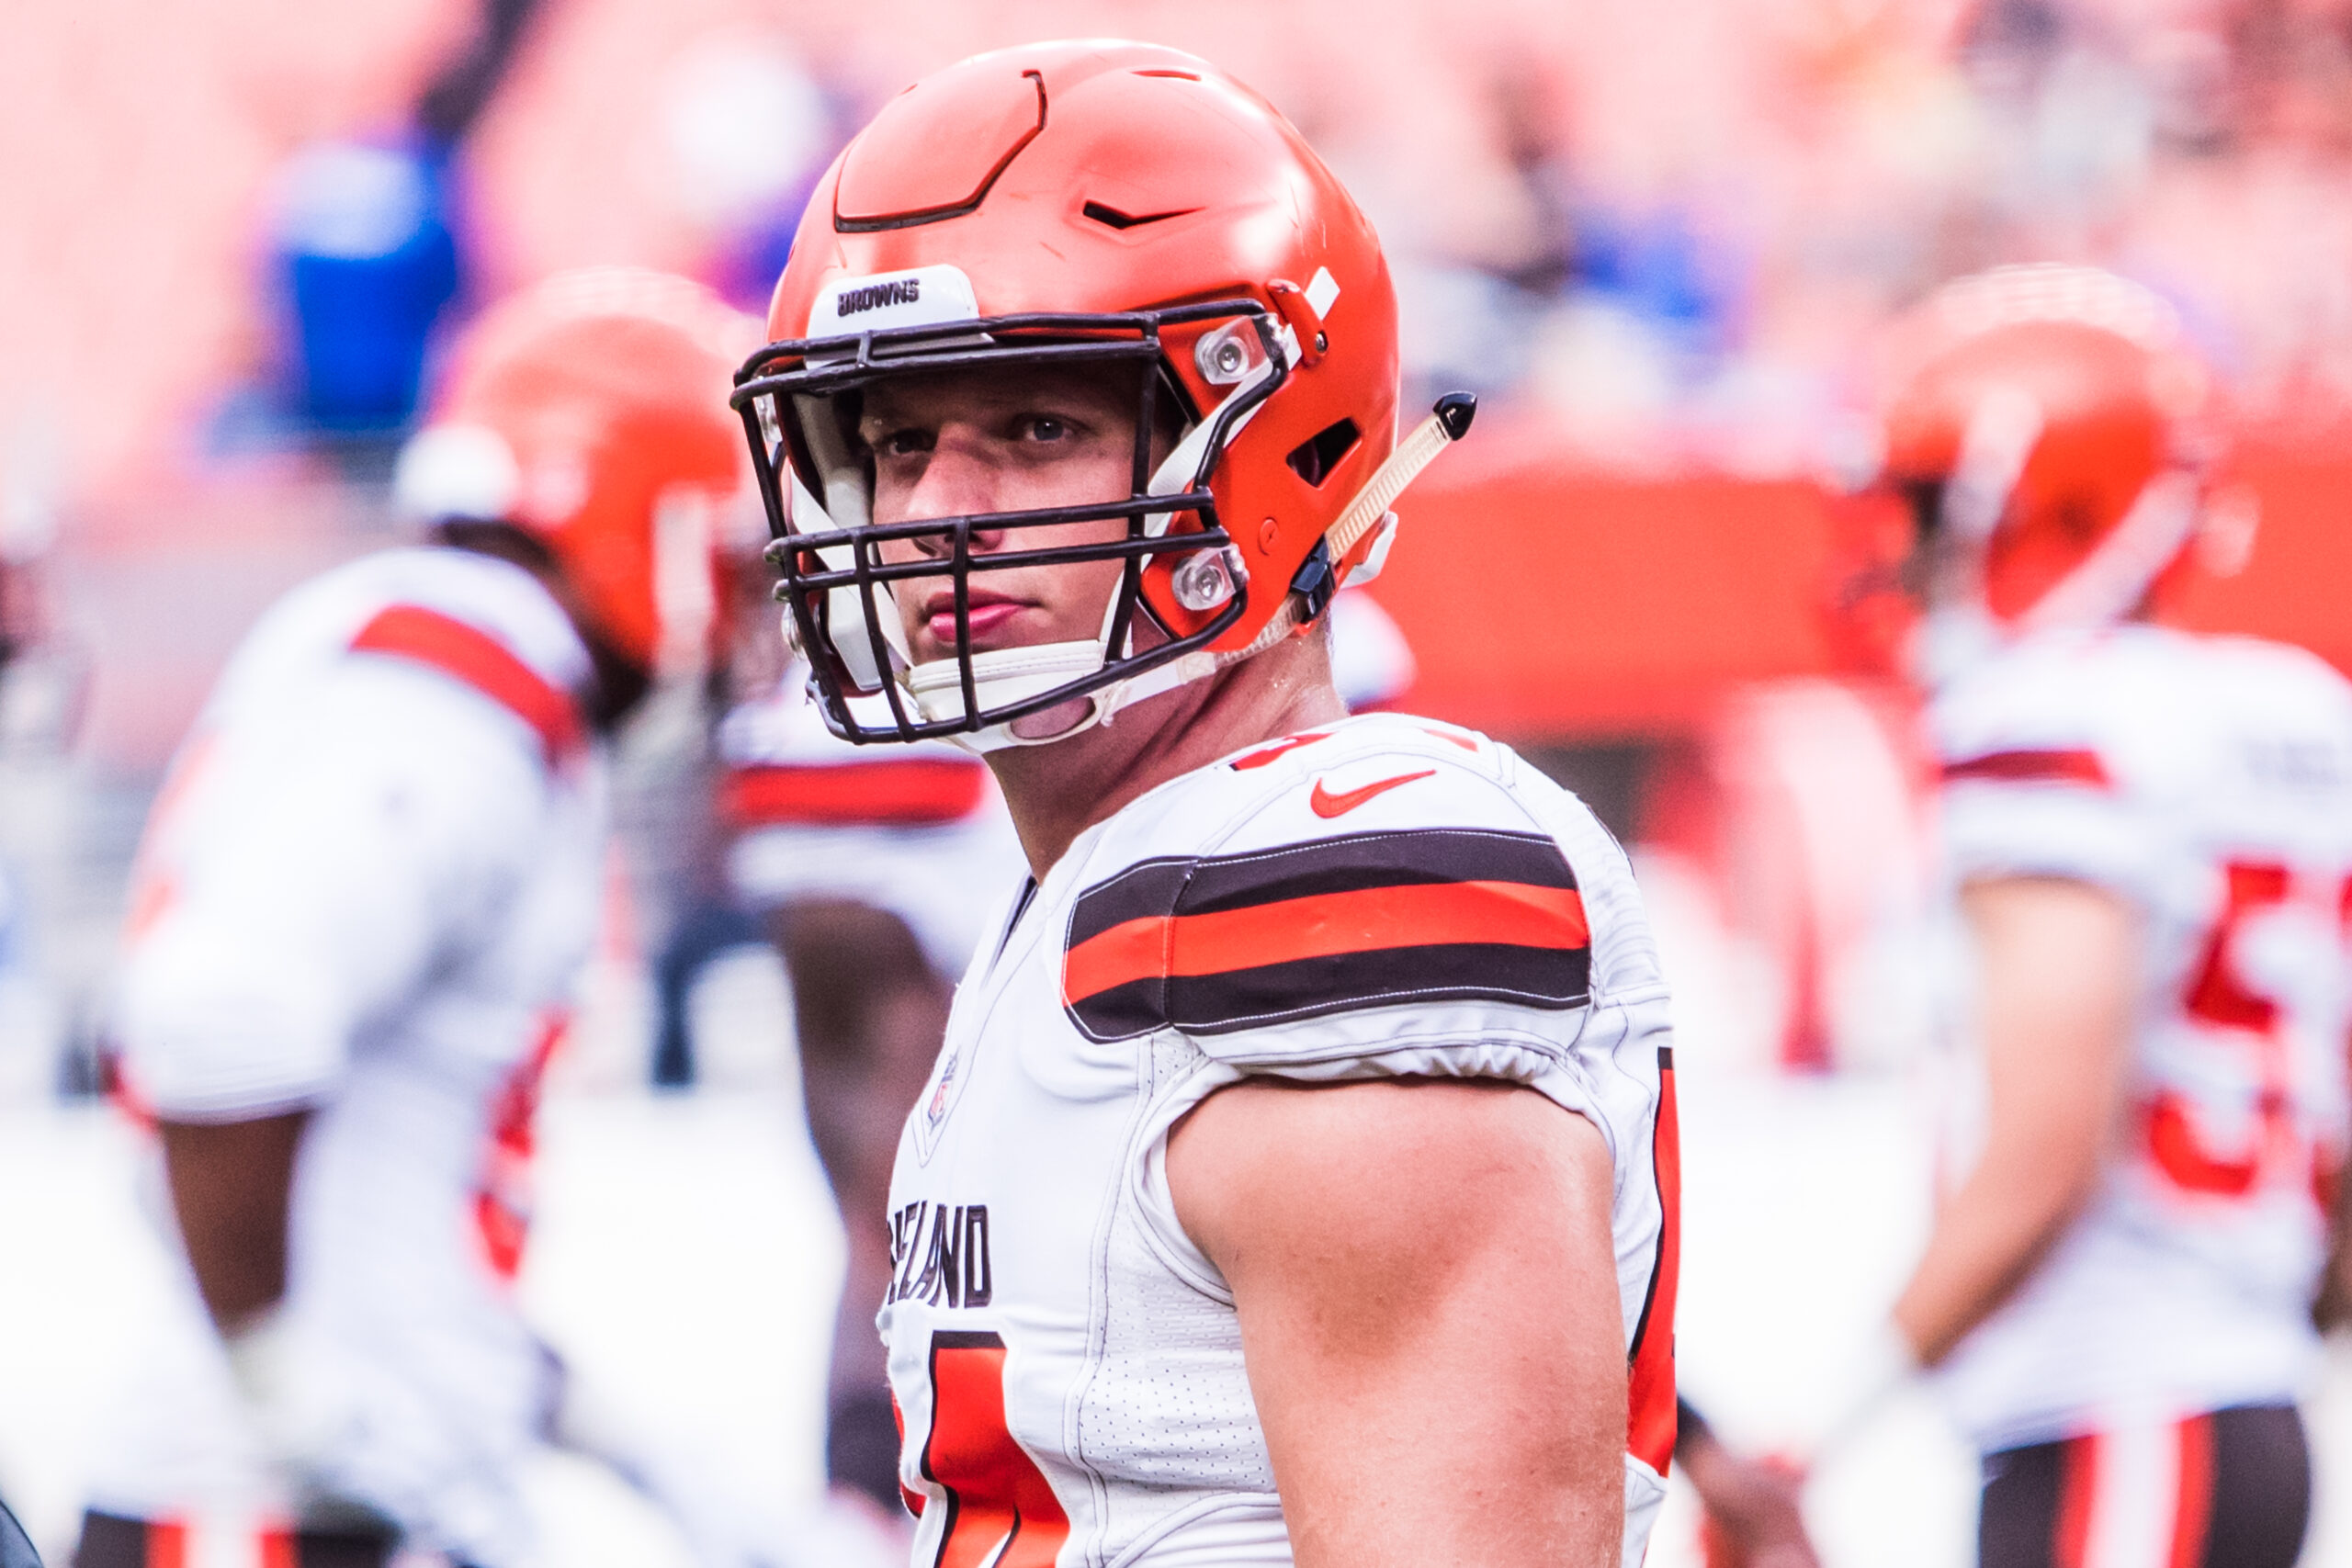 These 15 other LGBTQ football players paved the way for Carl Nassib to play while out